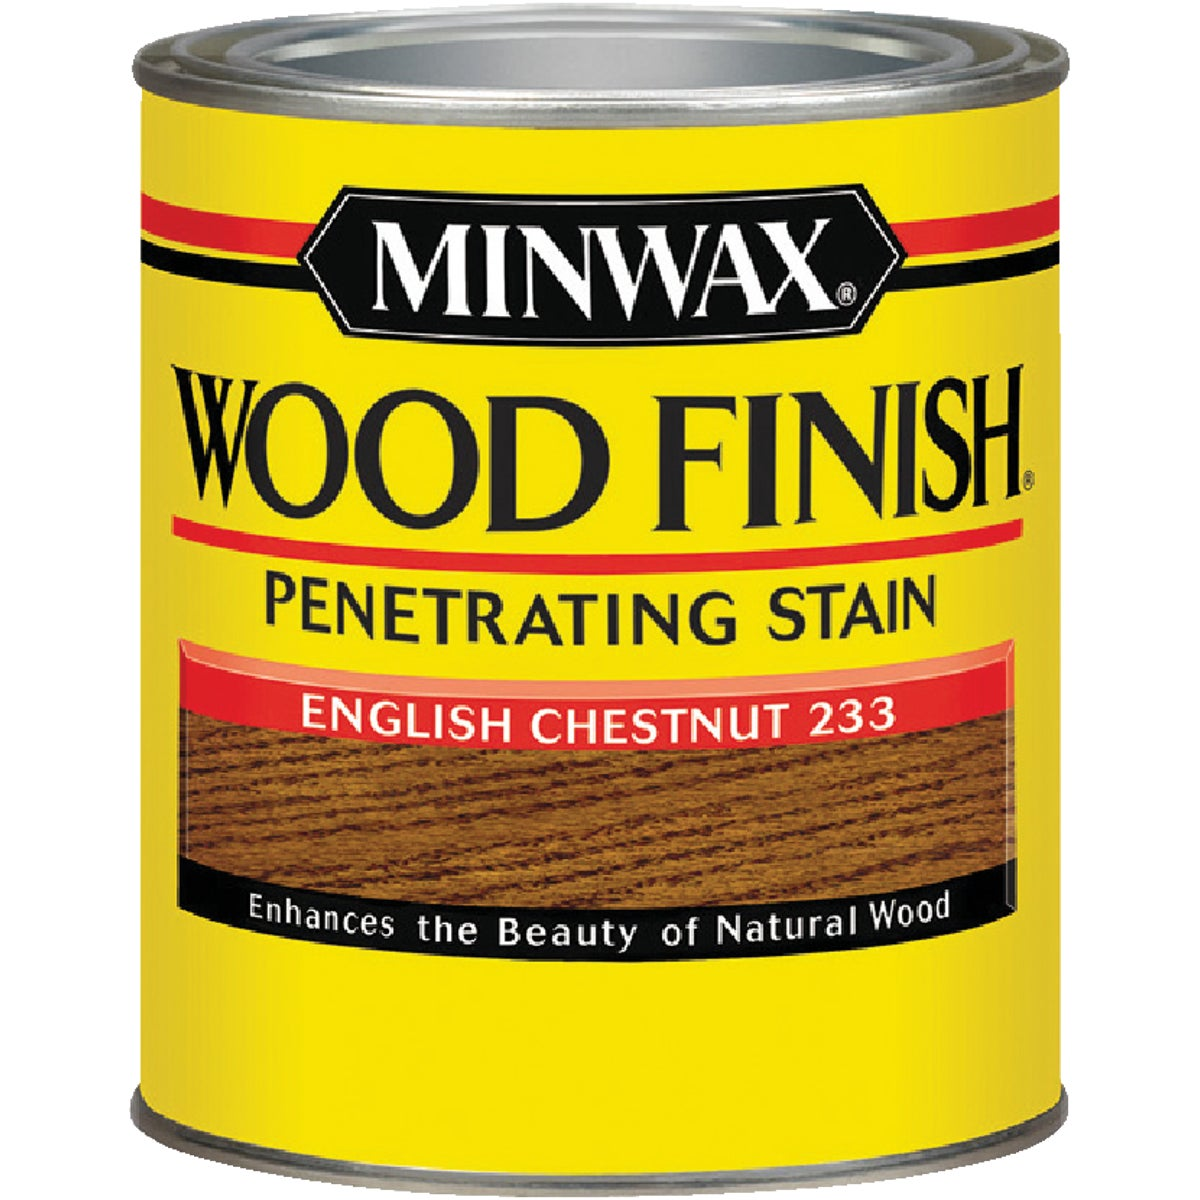 ENGL CHESTNUT WOOD STAIN - 223304444 by Minwax Company